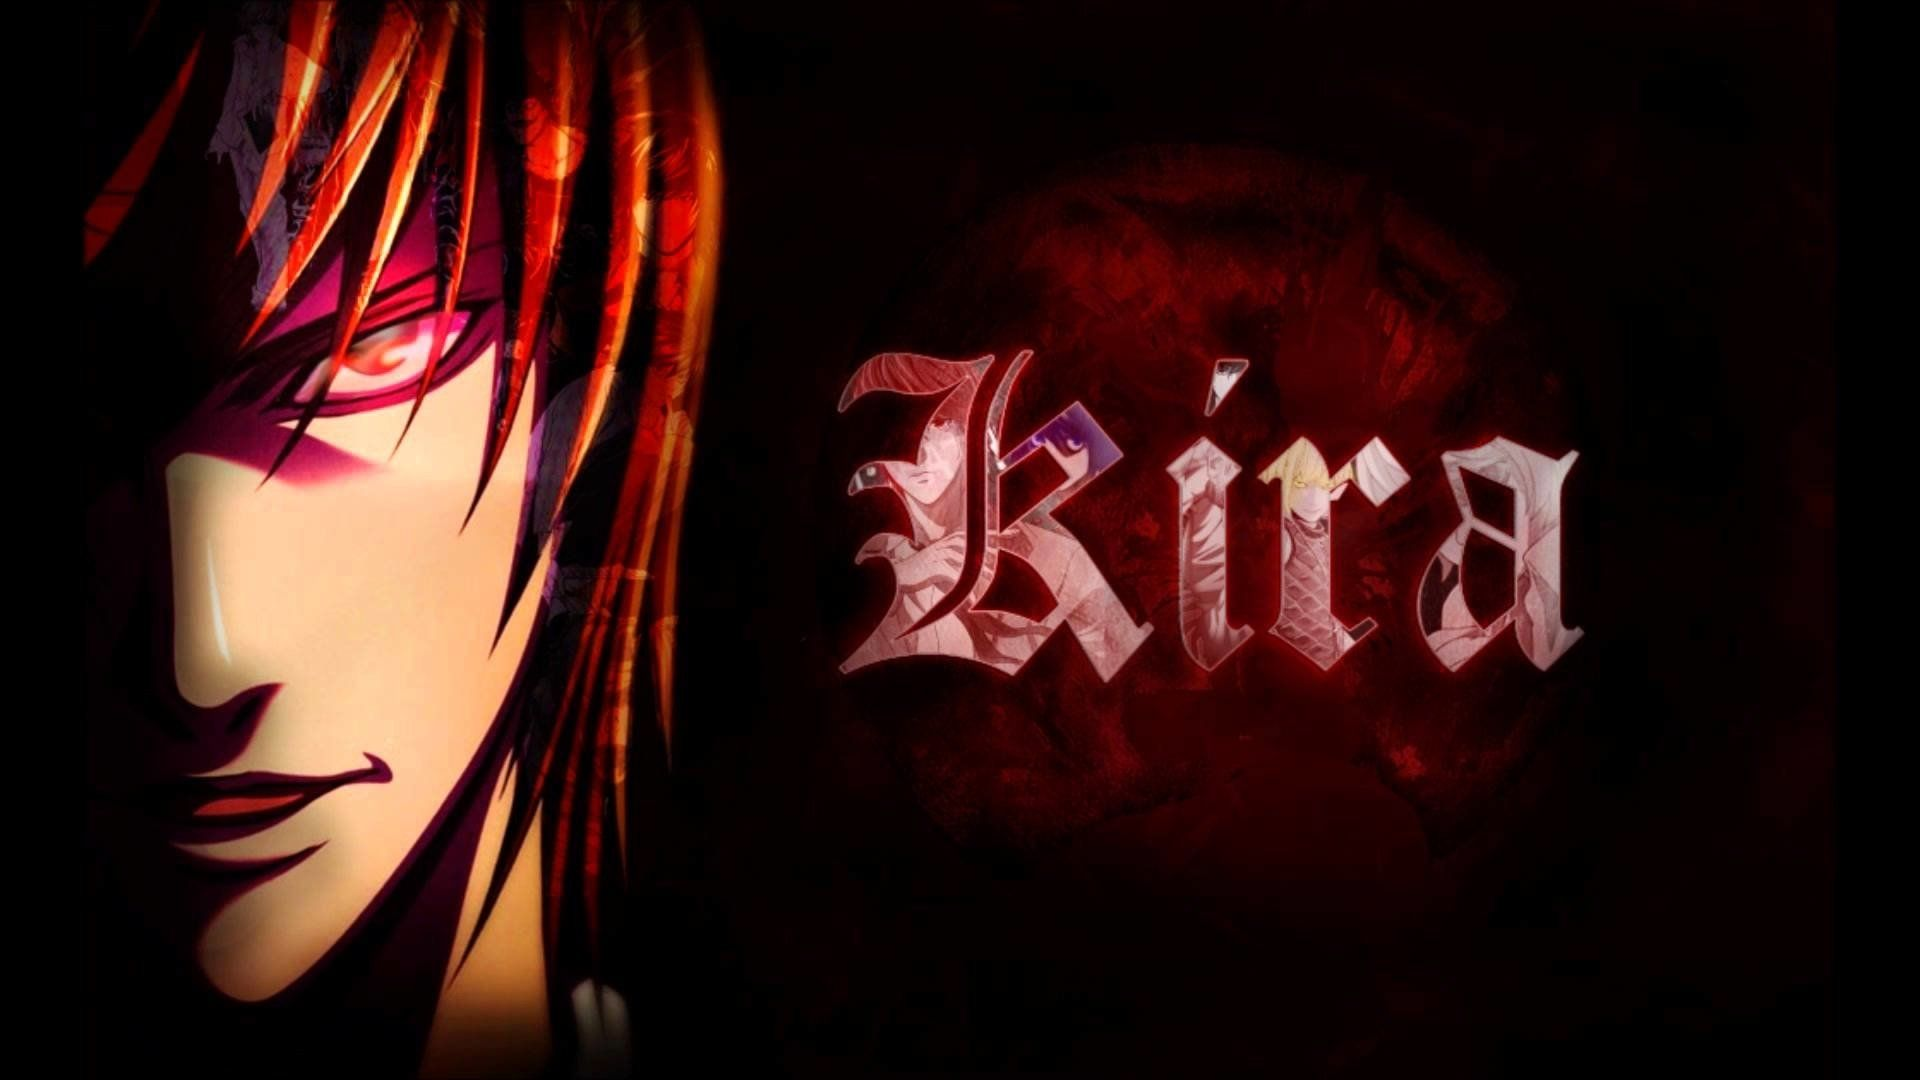 Light Yagami Death Note Wallpapers Top Free Light Yagami